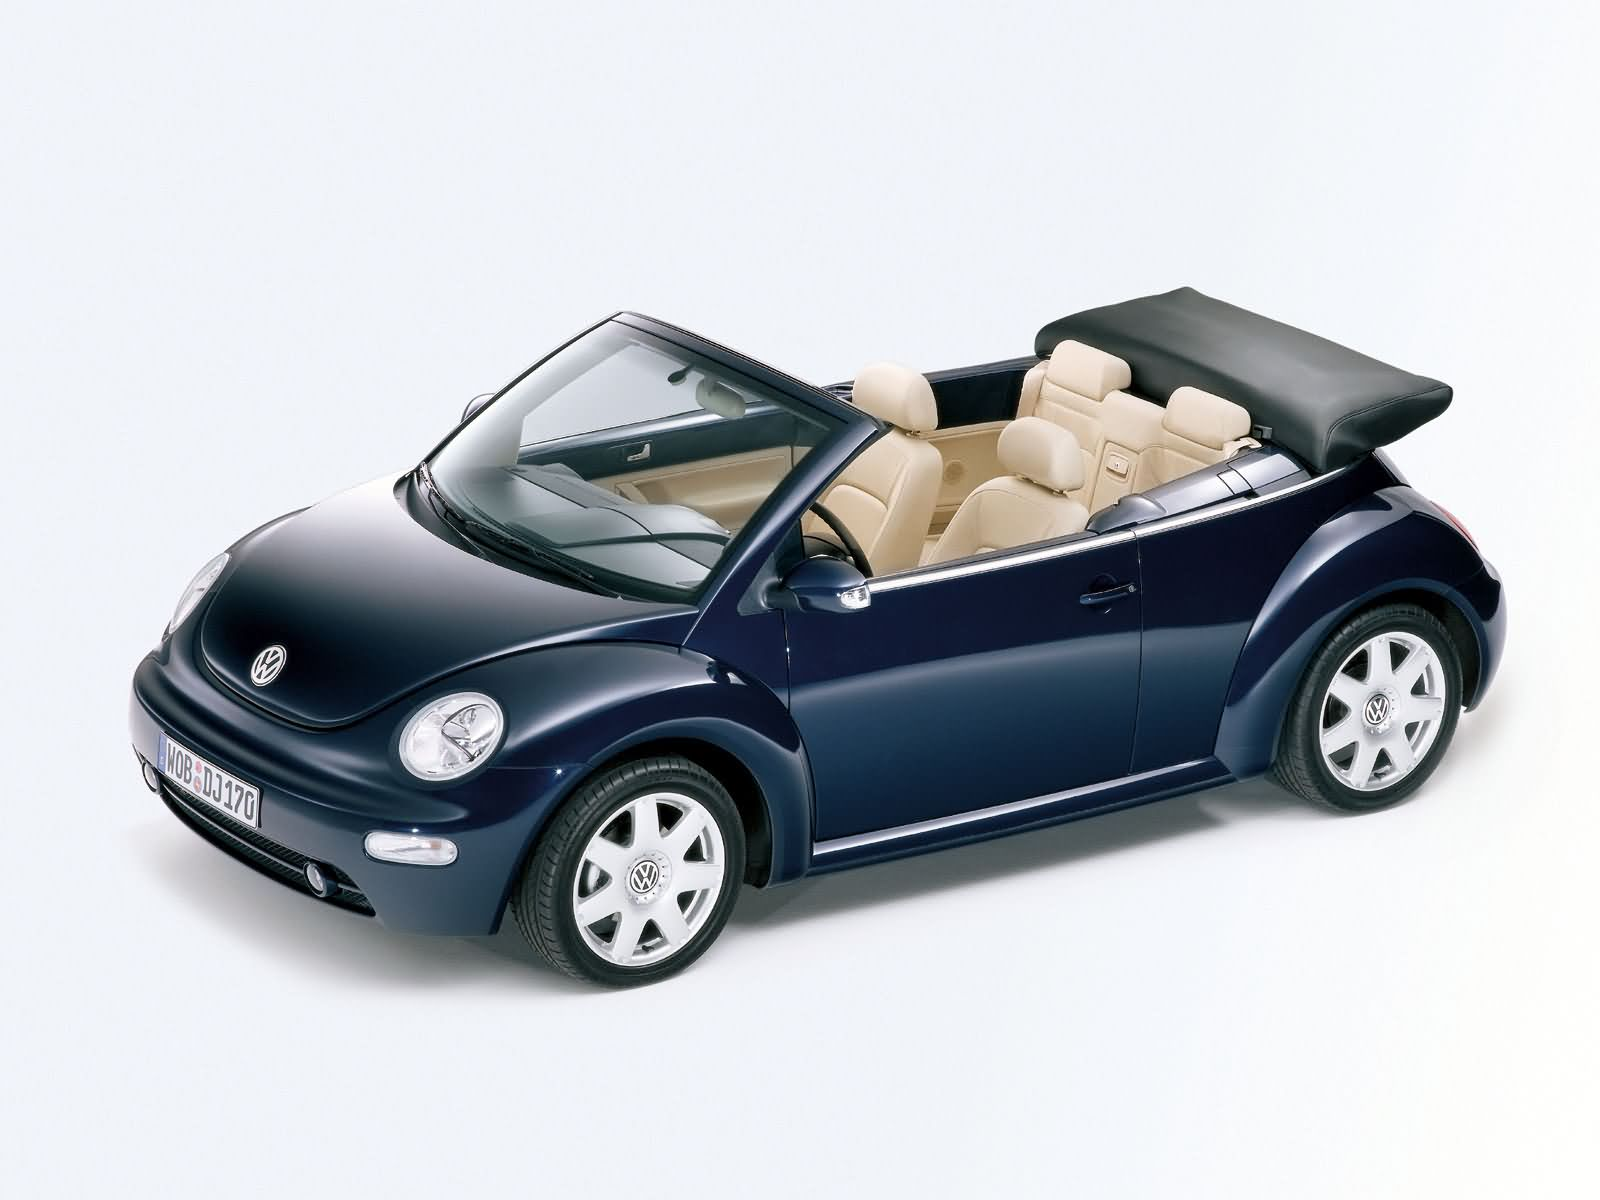 volkswagen new beetle cabriolet picture 17937 volkswagen photo gallery. Black Bedroom Furniture Sets. Home Design Ideas